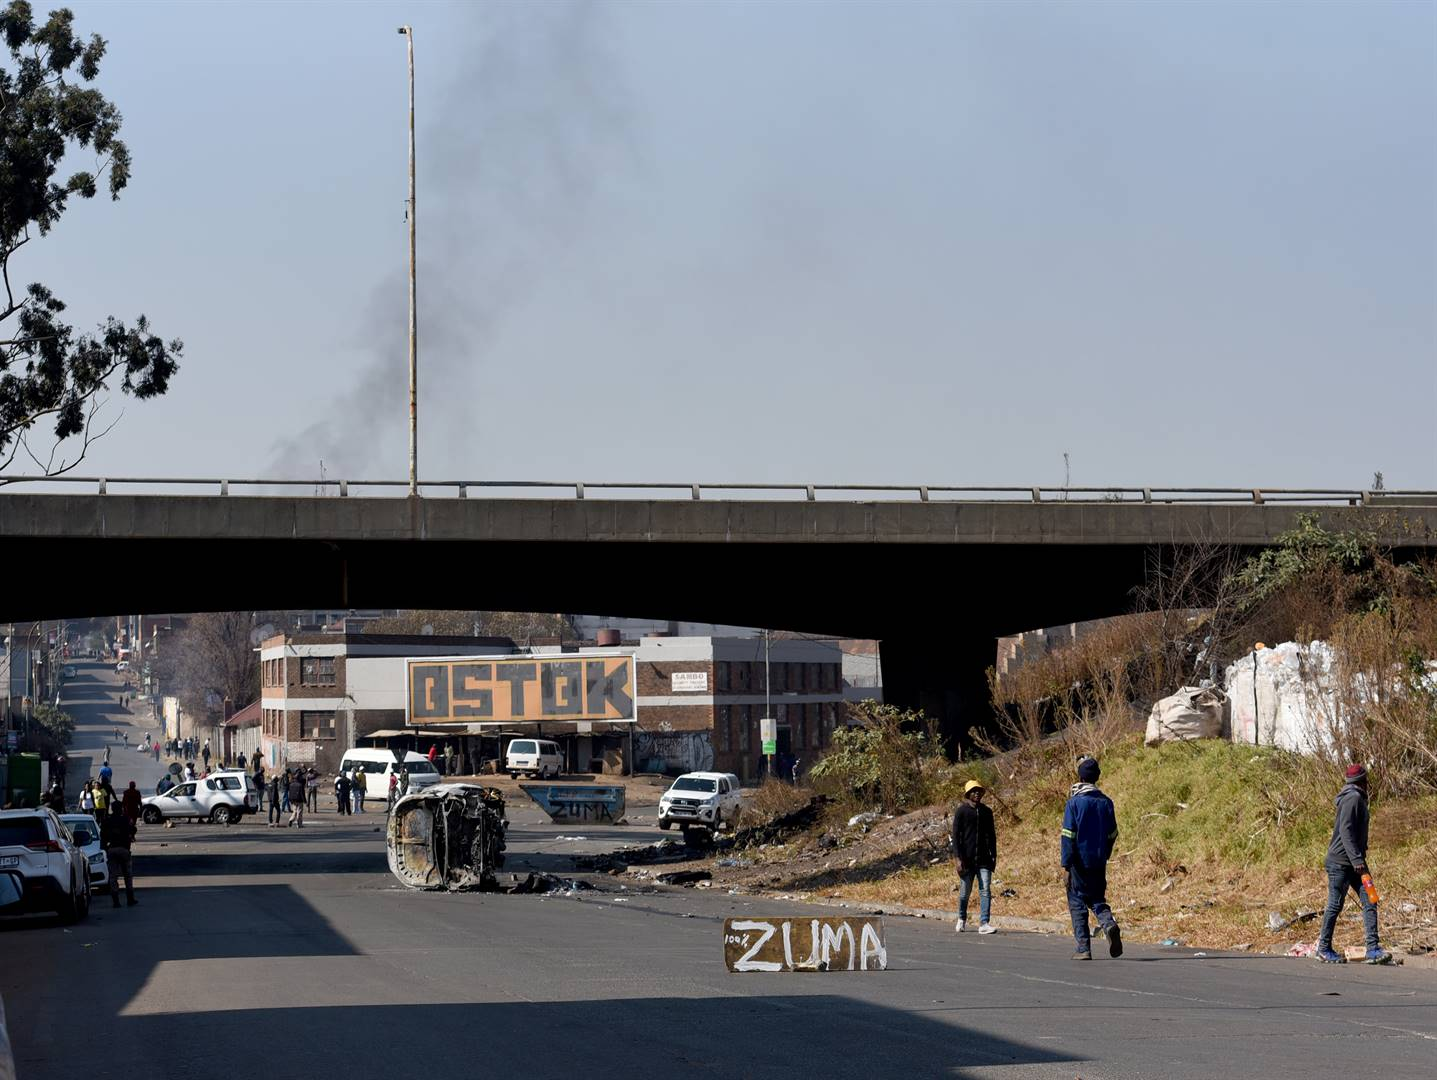 The smouldering remains of property that was destroyed during pro-Zuma protests in Johannesburg on Sunday PHOTO: Tebogo Letsie/City Press